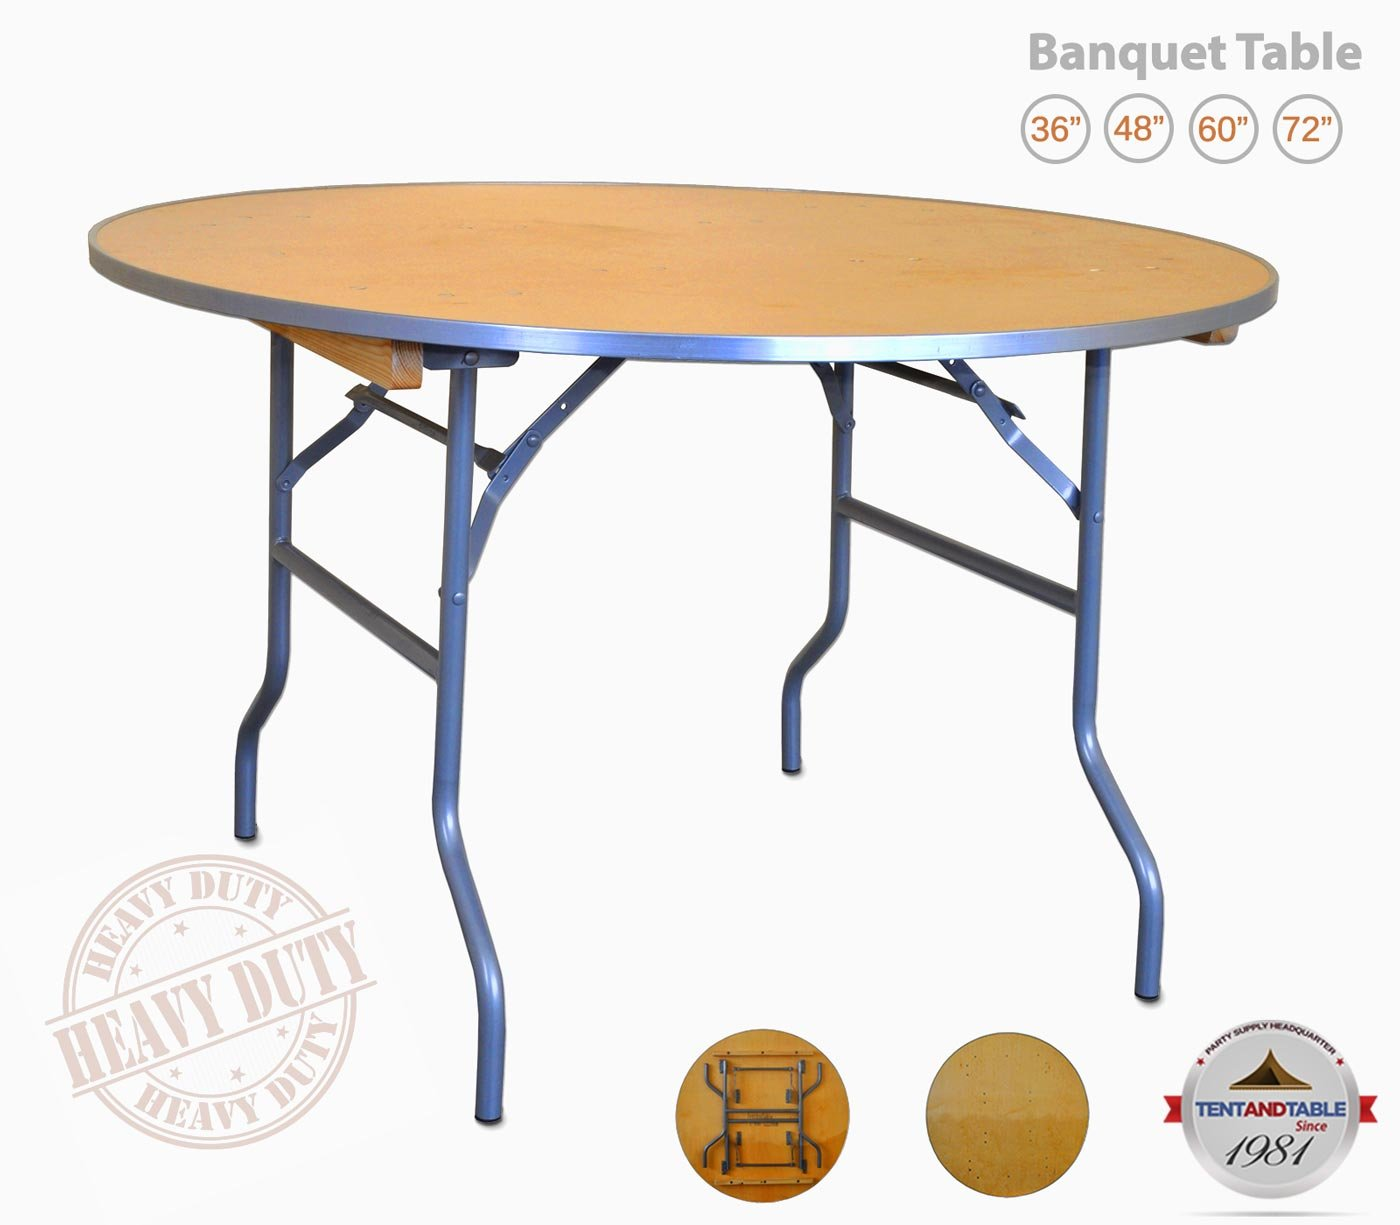 4-Foot (48-Inch) Diameter Heavy Duty Round Solid Birch Wood Folding Table with 30-Inch Height and Aluminum Edge for Weddings, Parties, Events, and Classrooms